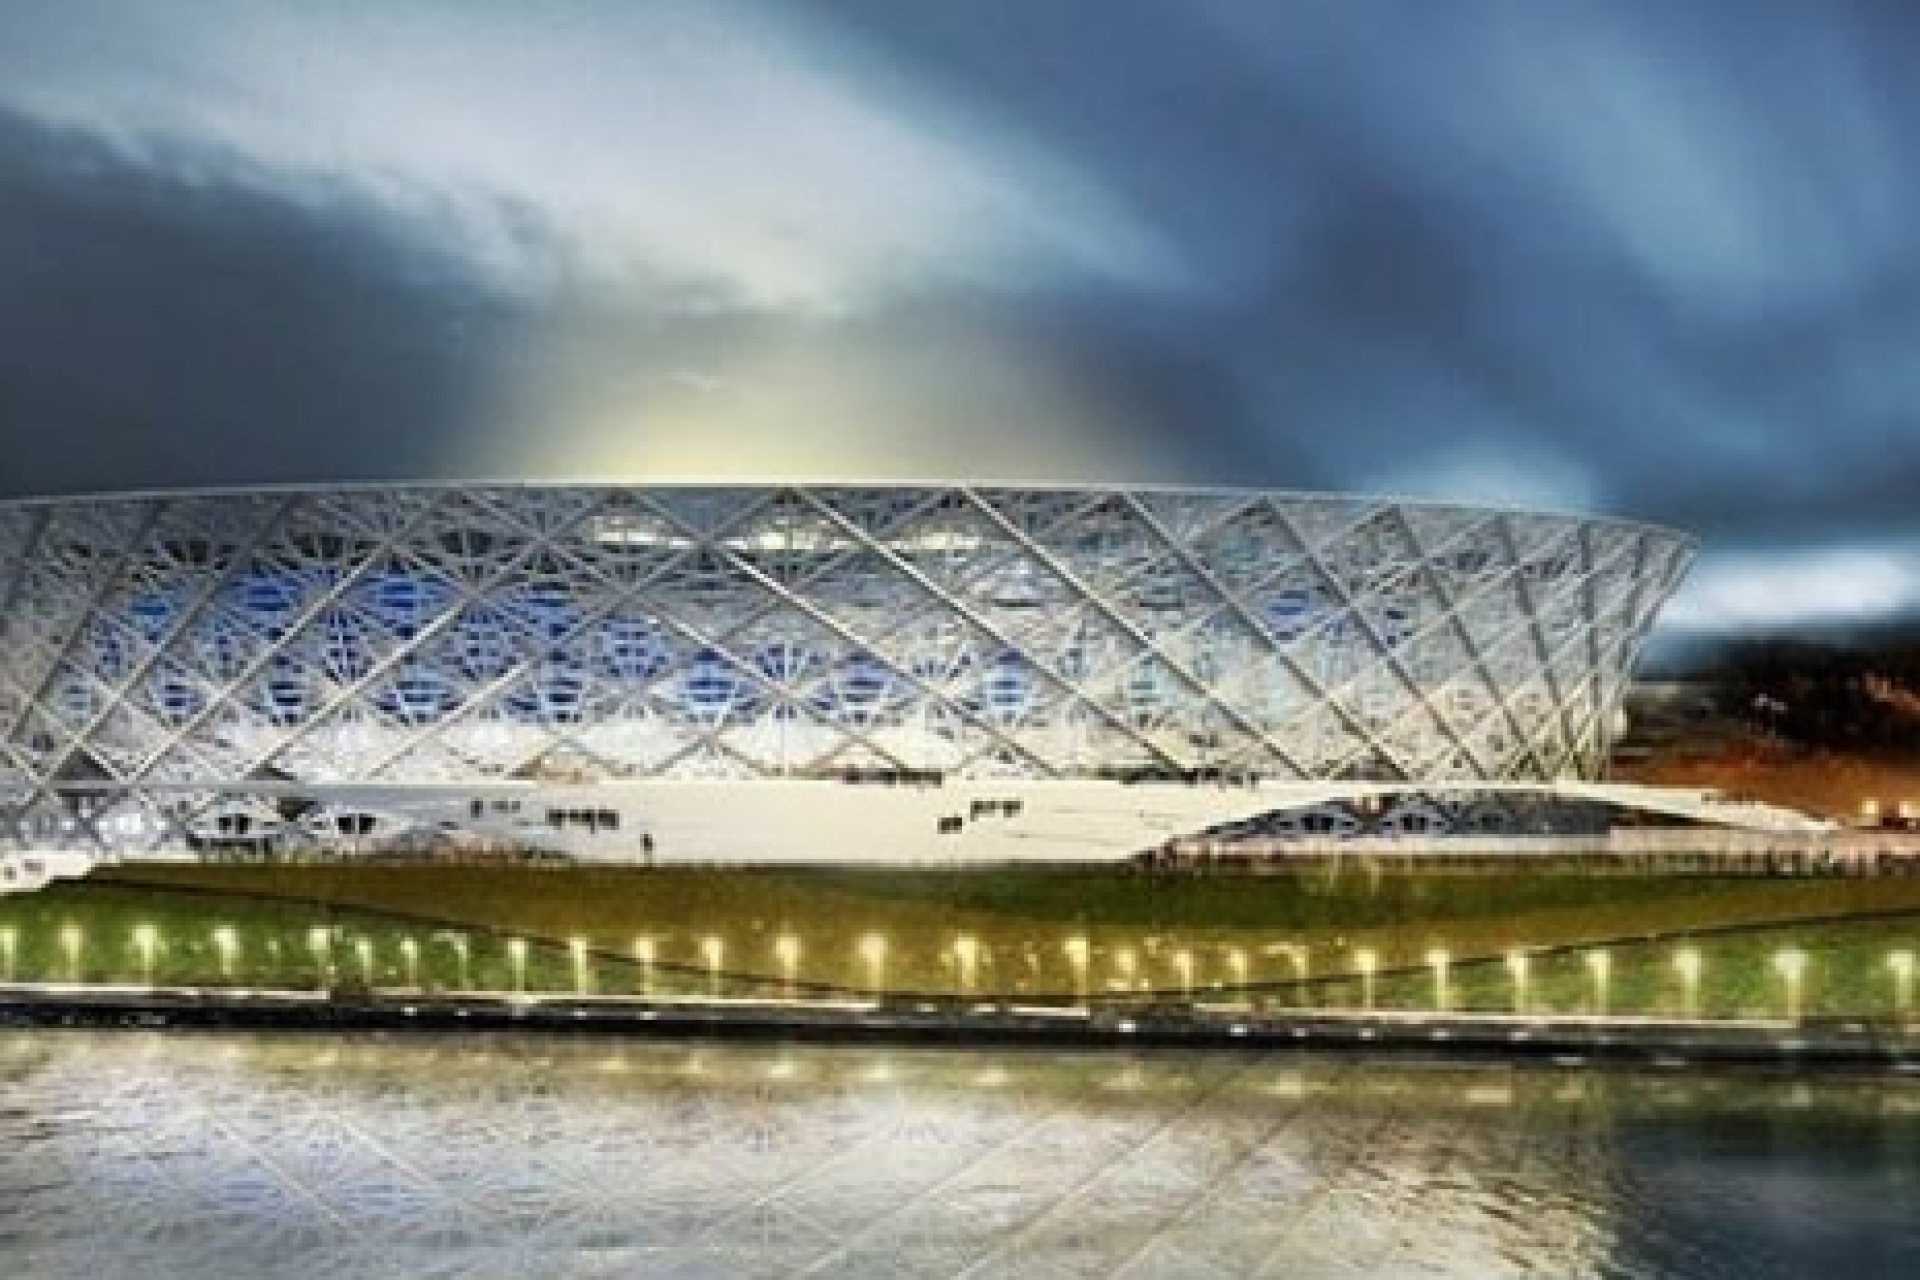 Stadiums of the World Cup 2018